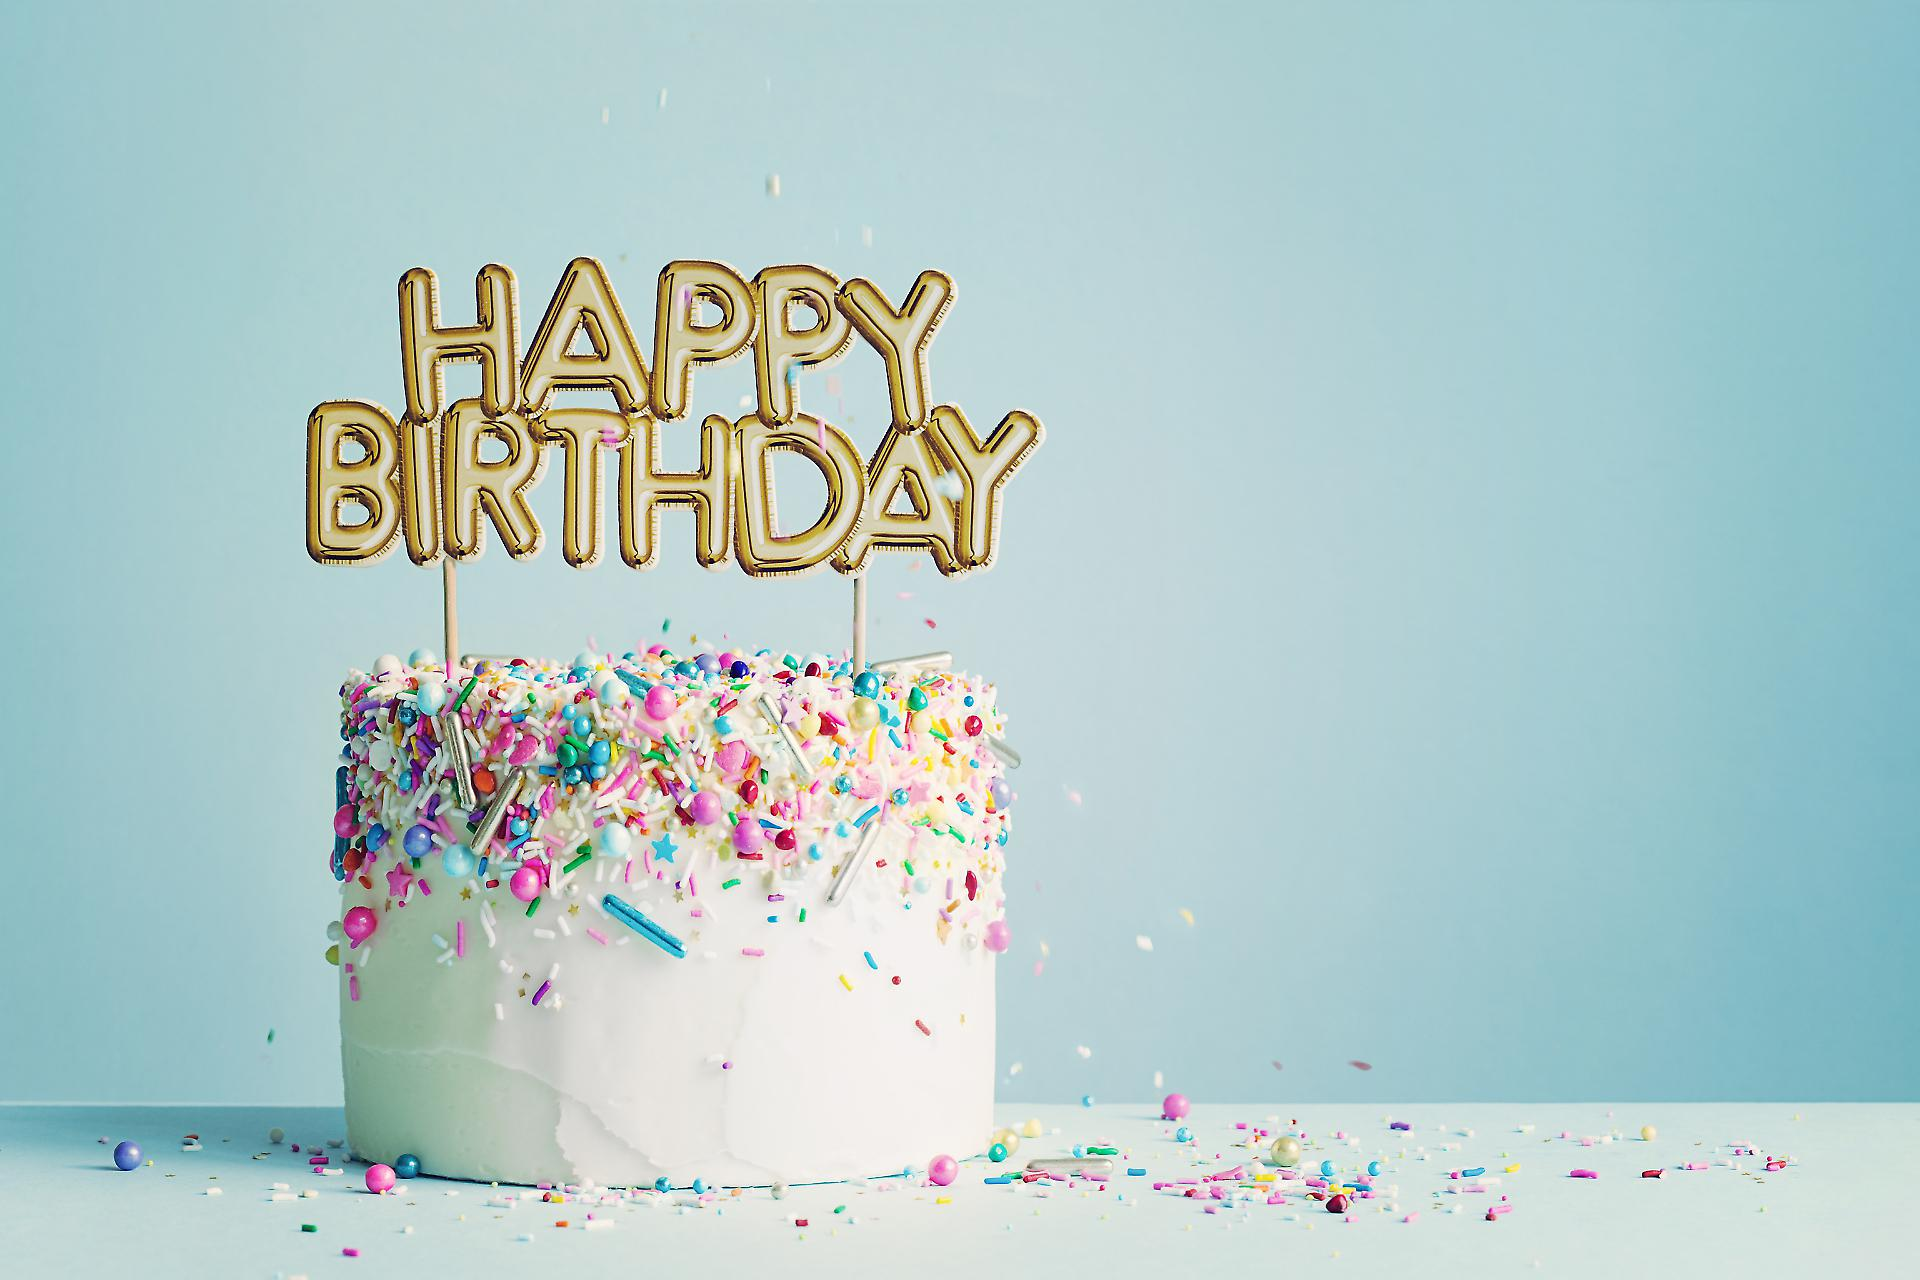 Happy Birthday to Donn Zver and a happy day for us! - Kids Can Fly